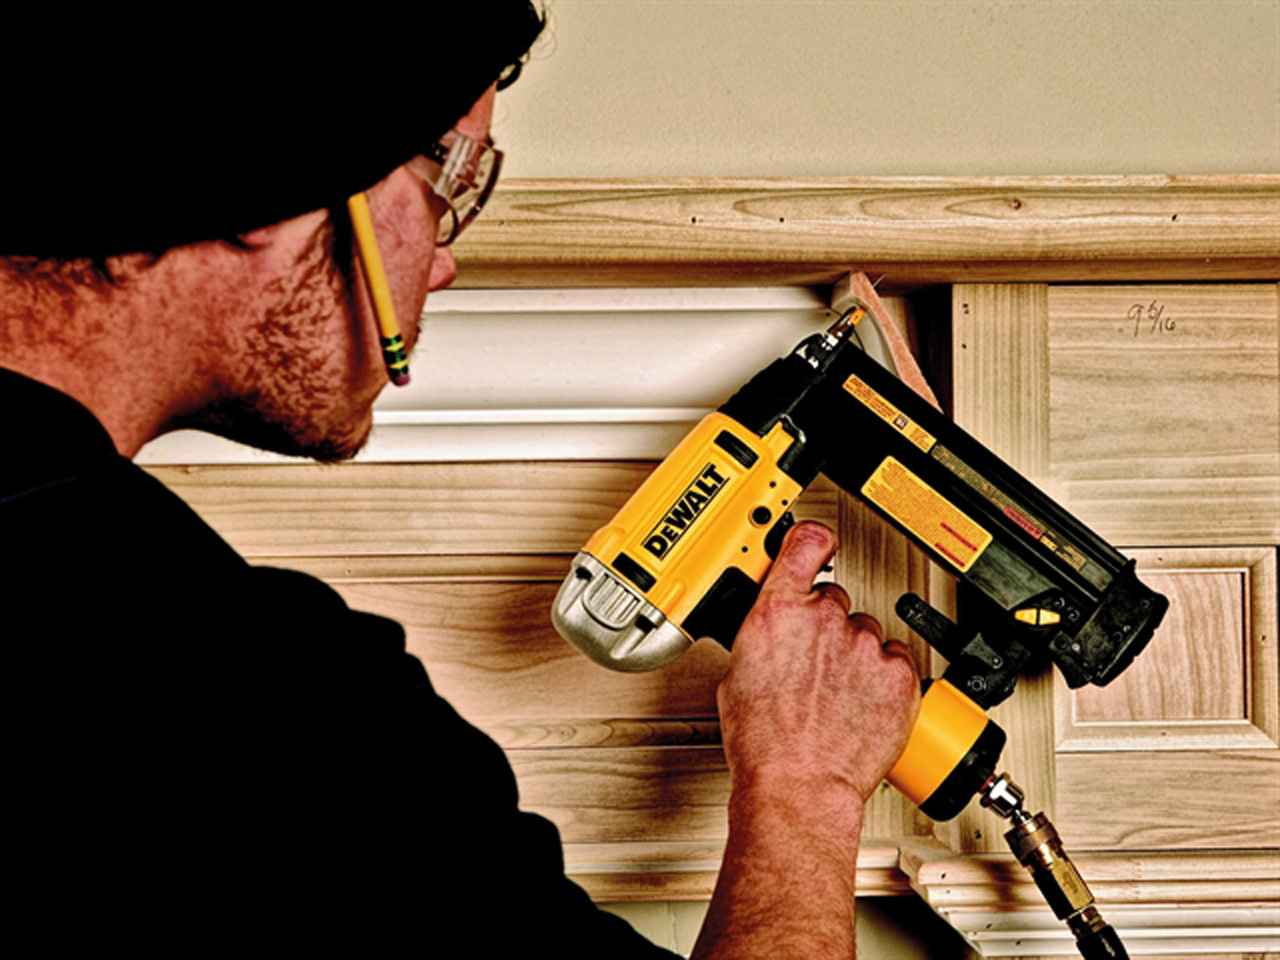 how to hold brad nailer